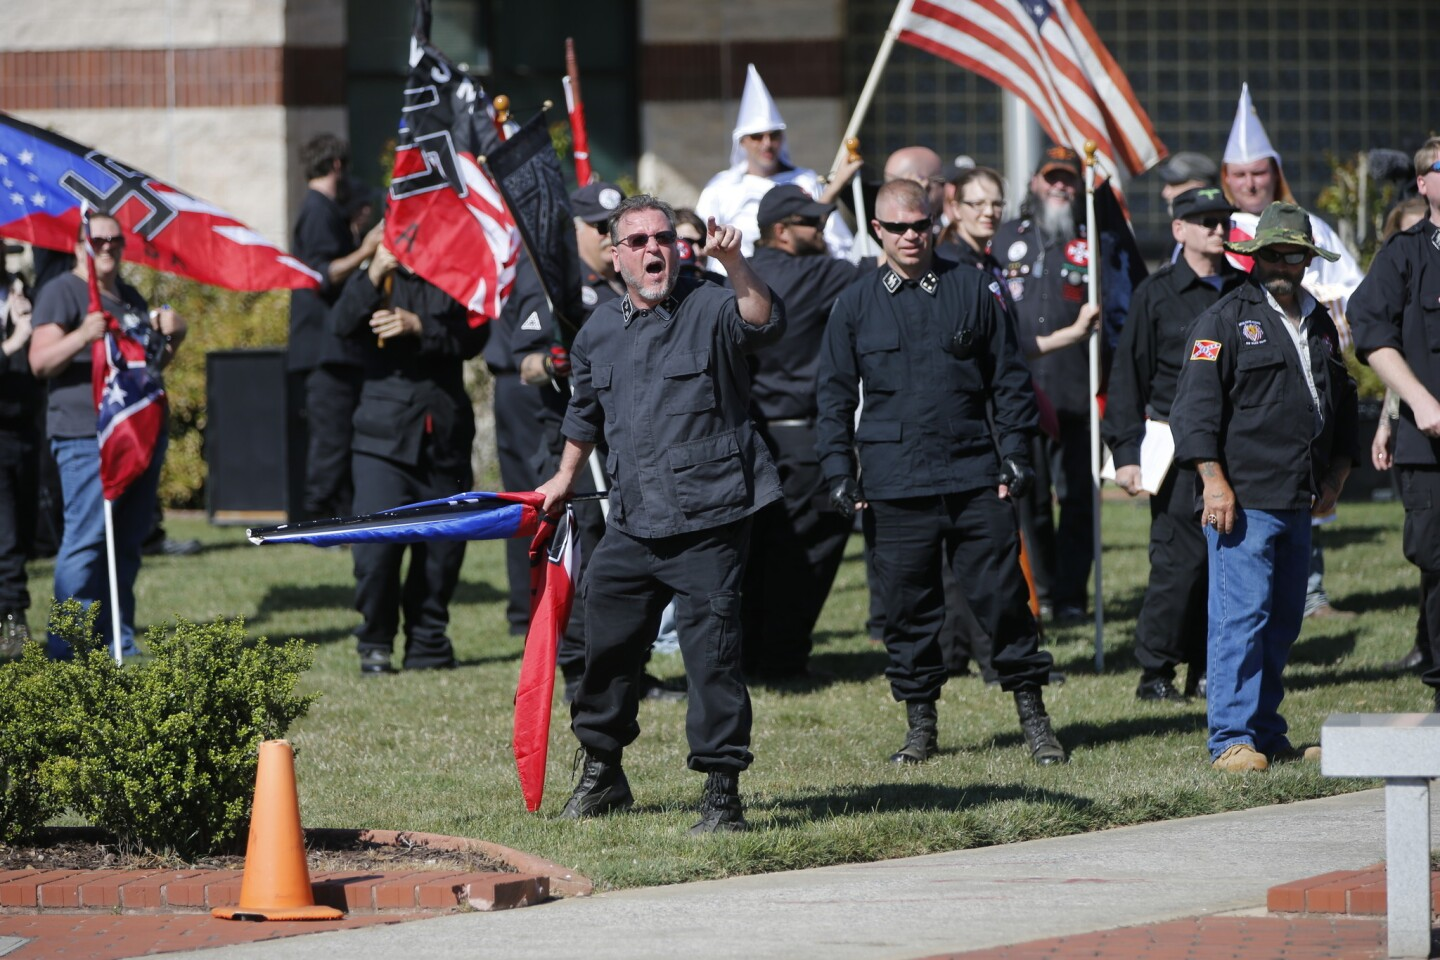 """Members of the Ku Klux Klan take part in a """"white pride"""" rally in Rome, Ga., in April. Klan leaders say they believe U.S. politics are going their way, as a nationalist, us-against-them mentality deepens across the nation."""